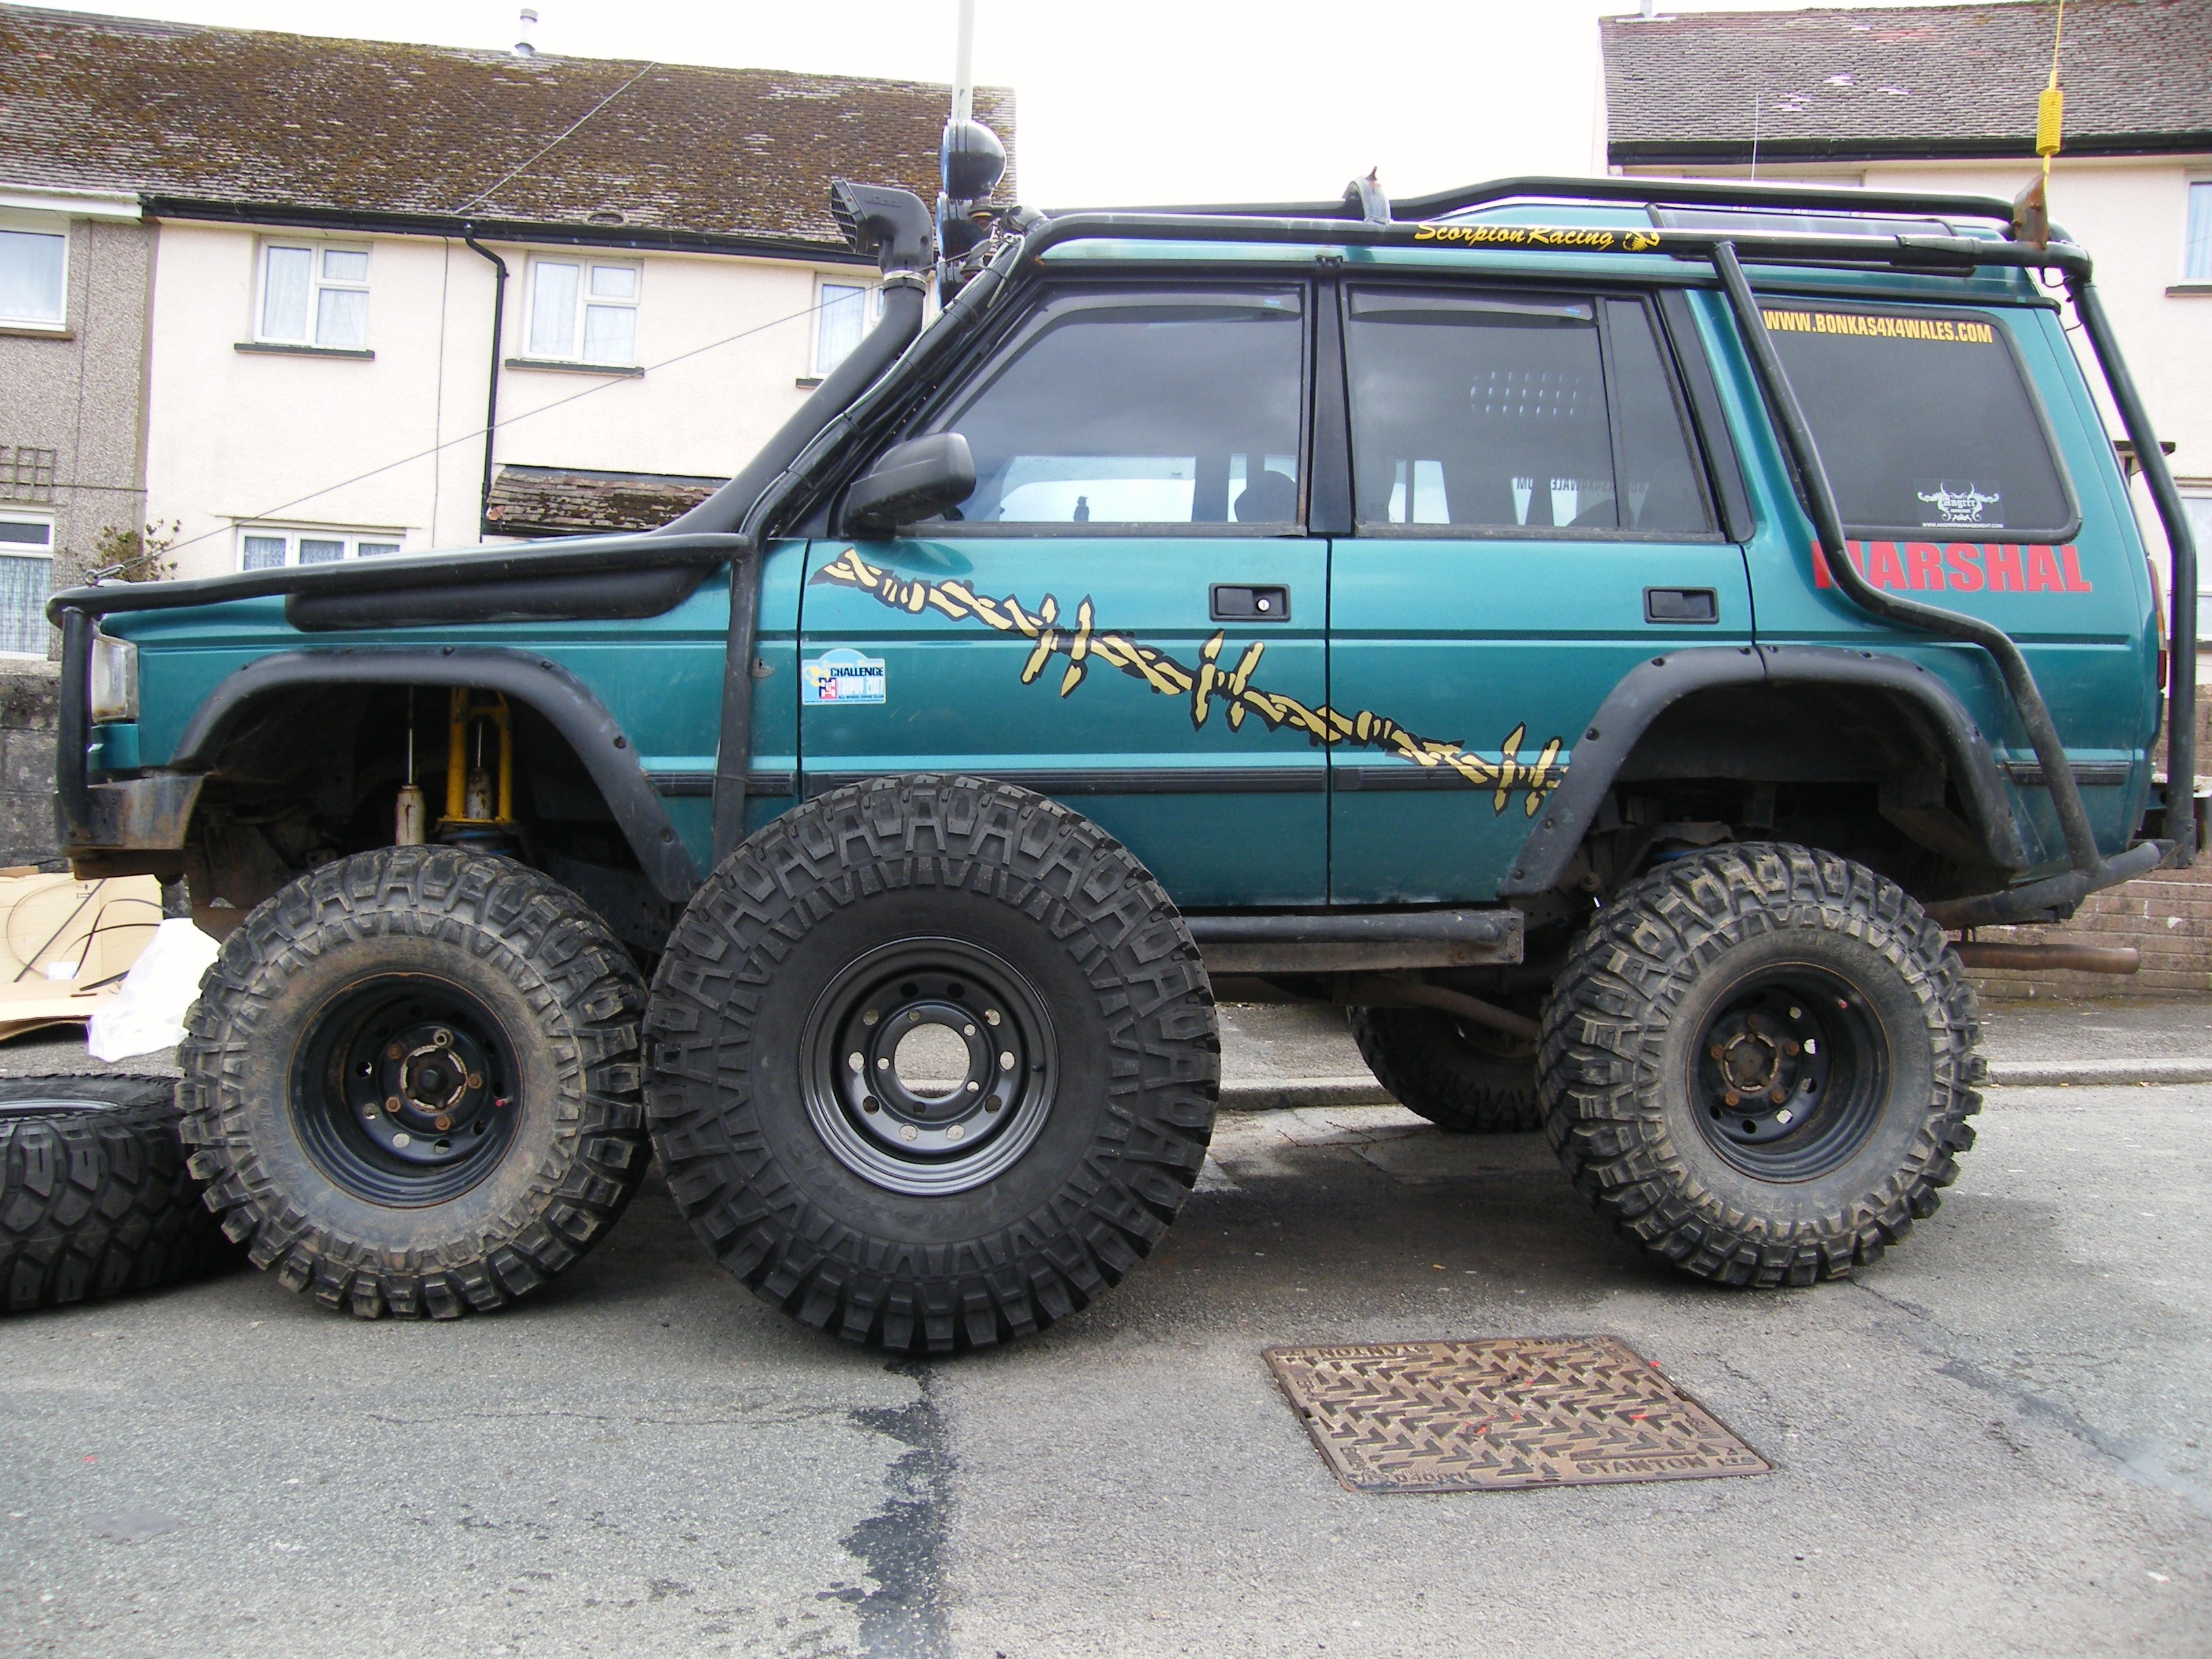 Defender Roll Cage Kit >> tonyakv 1996 Land Rover Discovery Specs, Photos, Modification Info at CarDomain